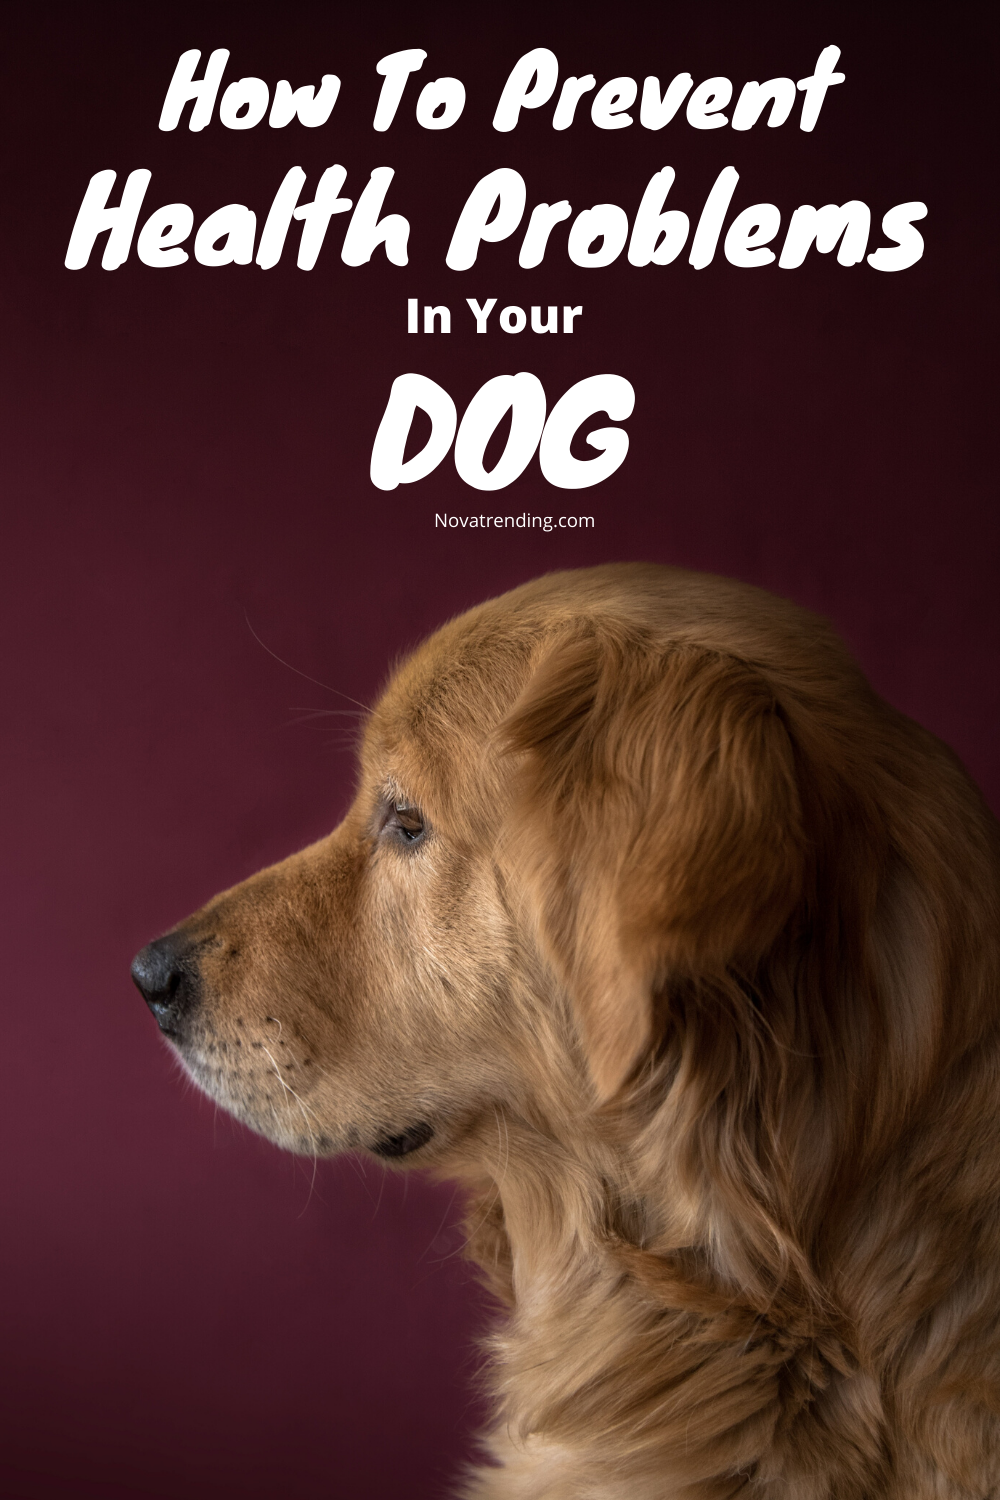 6 Tips To Prevent Health Problems In Dogs In 2020 With Images